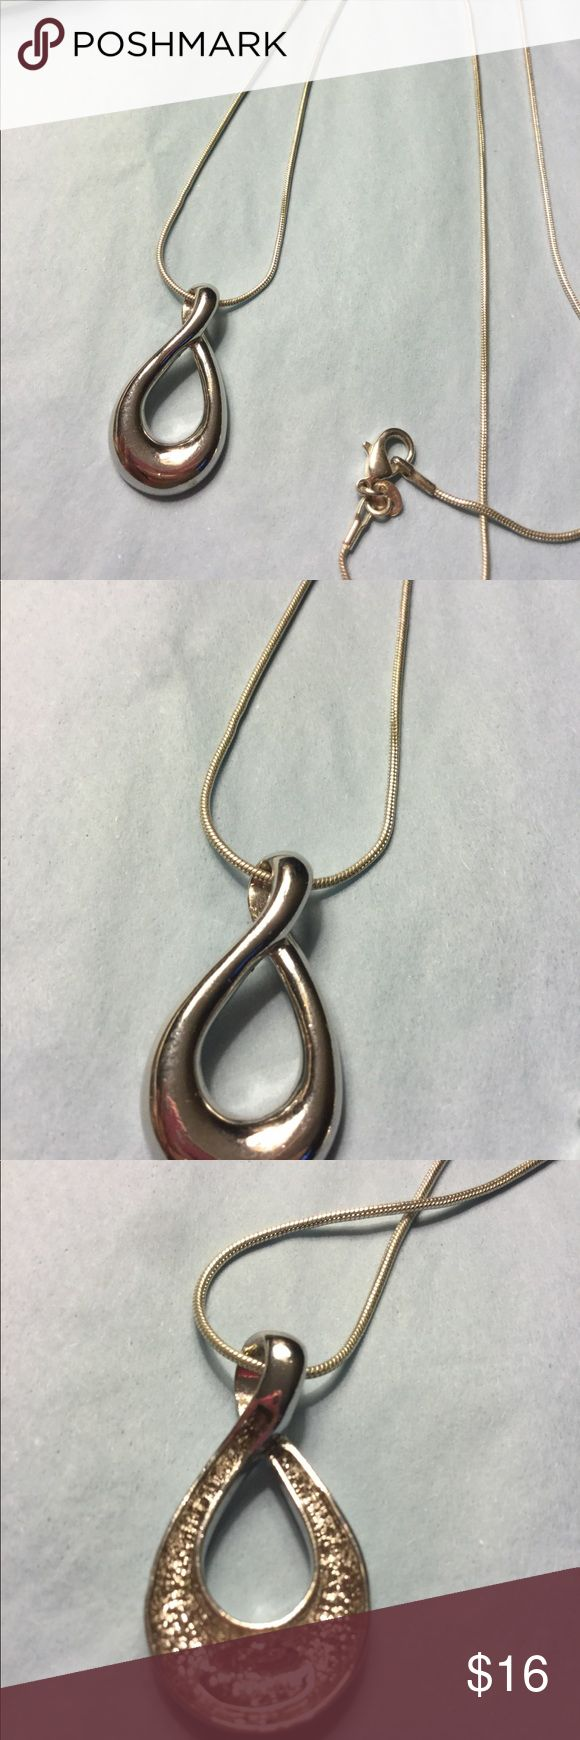 Lia Sophia pendant with sterling silver necklace Lia Sophia pendant silver with sterling silver snake chain NECKLACE IS NOT LIA SOPHIA NWOT Lia Sophia Jewelry Necklaces